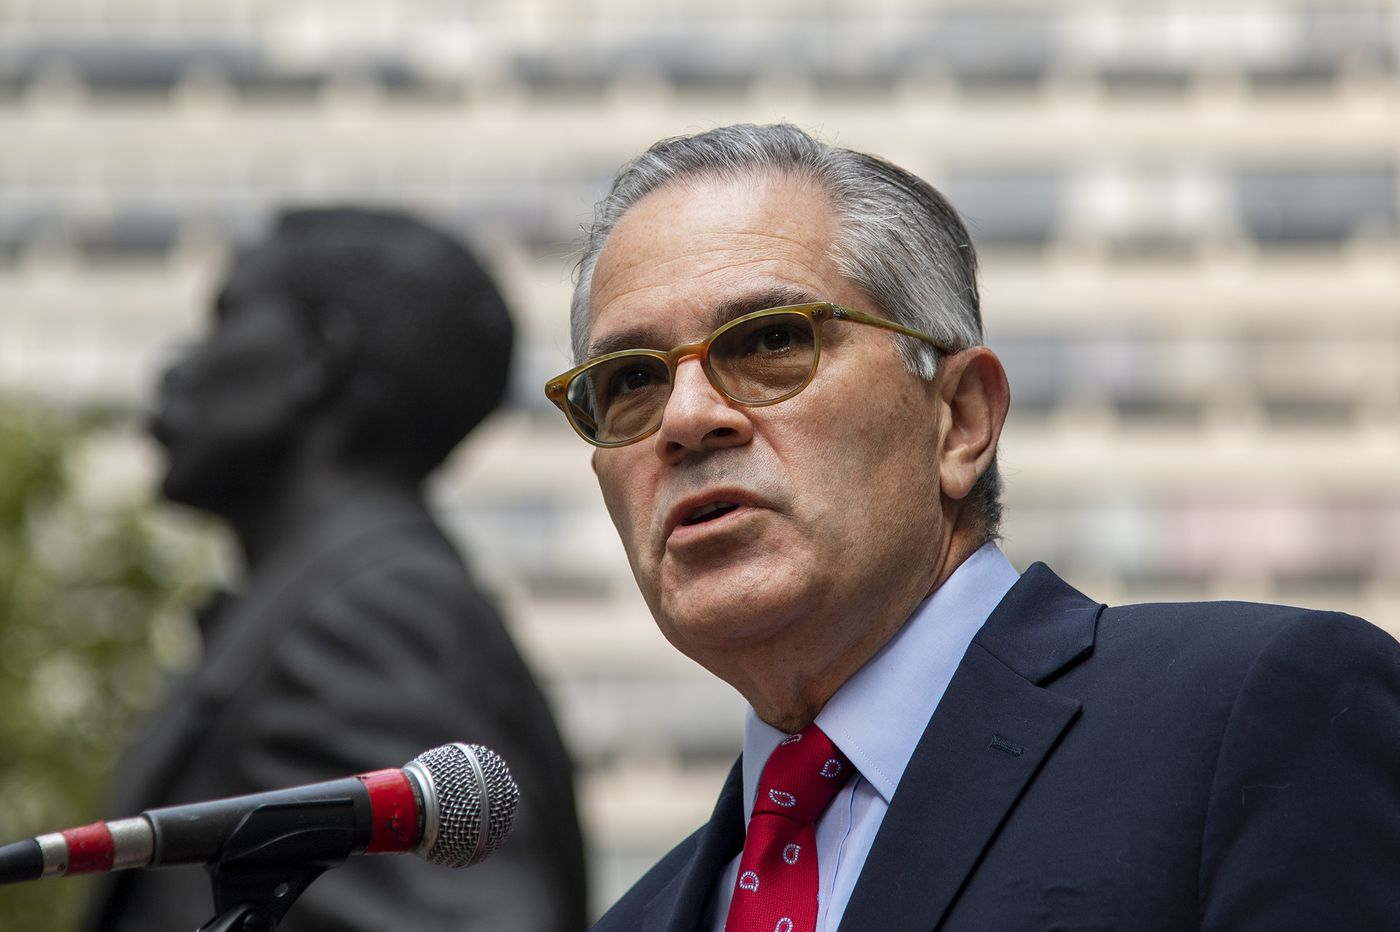 Philly DA Larry Krasner is ready for his close-up, just in time for reelection